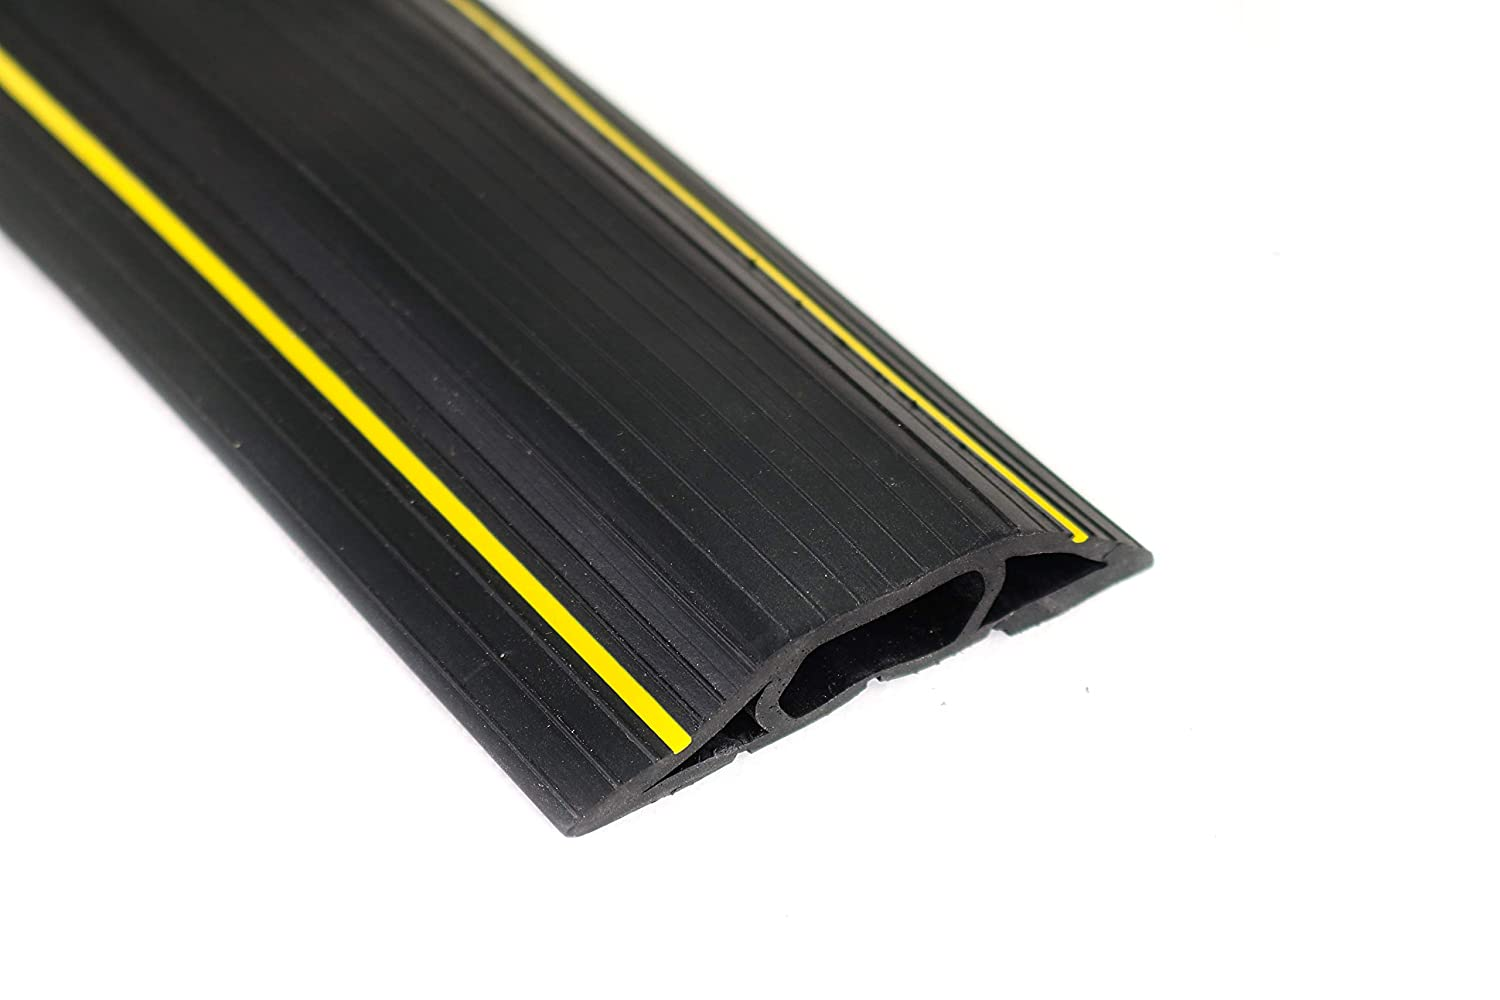 Vineto Floor Cord Protector 6.5 Ft Black PVC Heavy Duty 3 Channel Raceway to Cover and Conceal Cables and Wires for Indoor and Outdoor Offices, Garages, Concerts, Warehouses